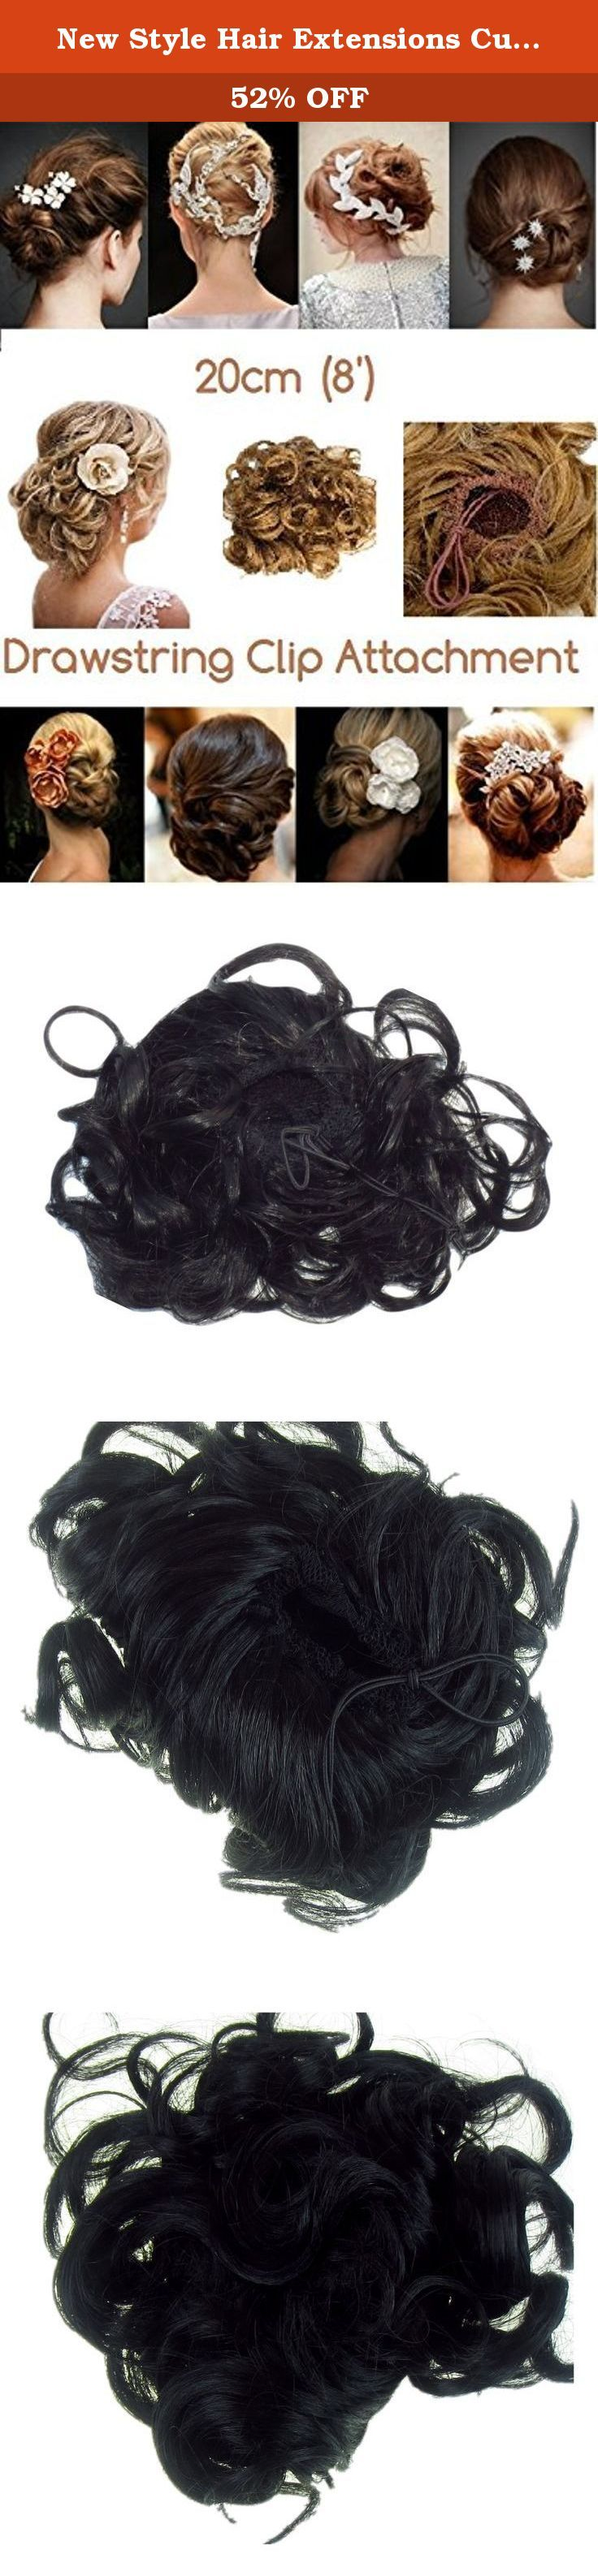 New Style Hair Extensions Curly Or Messy Drawstring Updo Full Bun Add Body Black Synthetic. Curly Up-do or Messy Bun -This appealing little messy bun can be styled in the classic Up-Do look . Or why not try the celebrity side bun look This type of faux bun is low maintenance and can be styled differently depending on the desired result. The bun can be styled to obtain an elegant and classic up do, appropriate for formal events or it can be styled to obtain a more casual side or back bun...